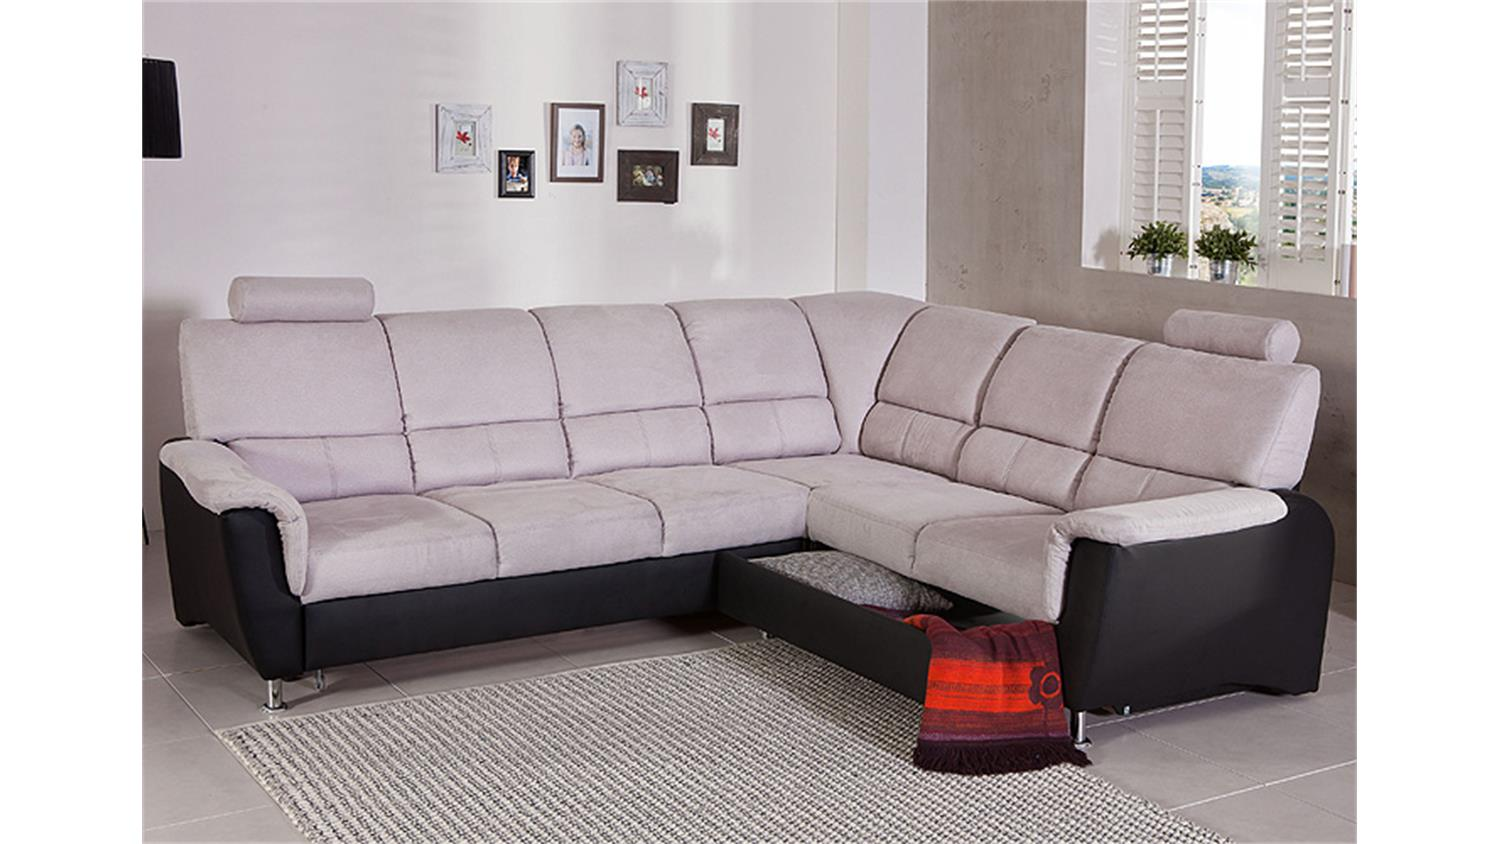 ecksofa pisa eckgarnitur l sofa grau schwarz bettfunktion kopfst tzen. Black Bedroom Furniture Sets. Home Design Ideas